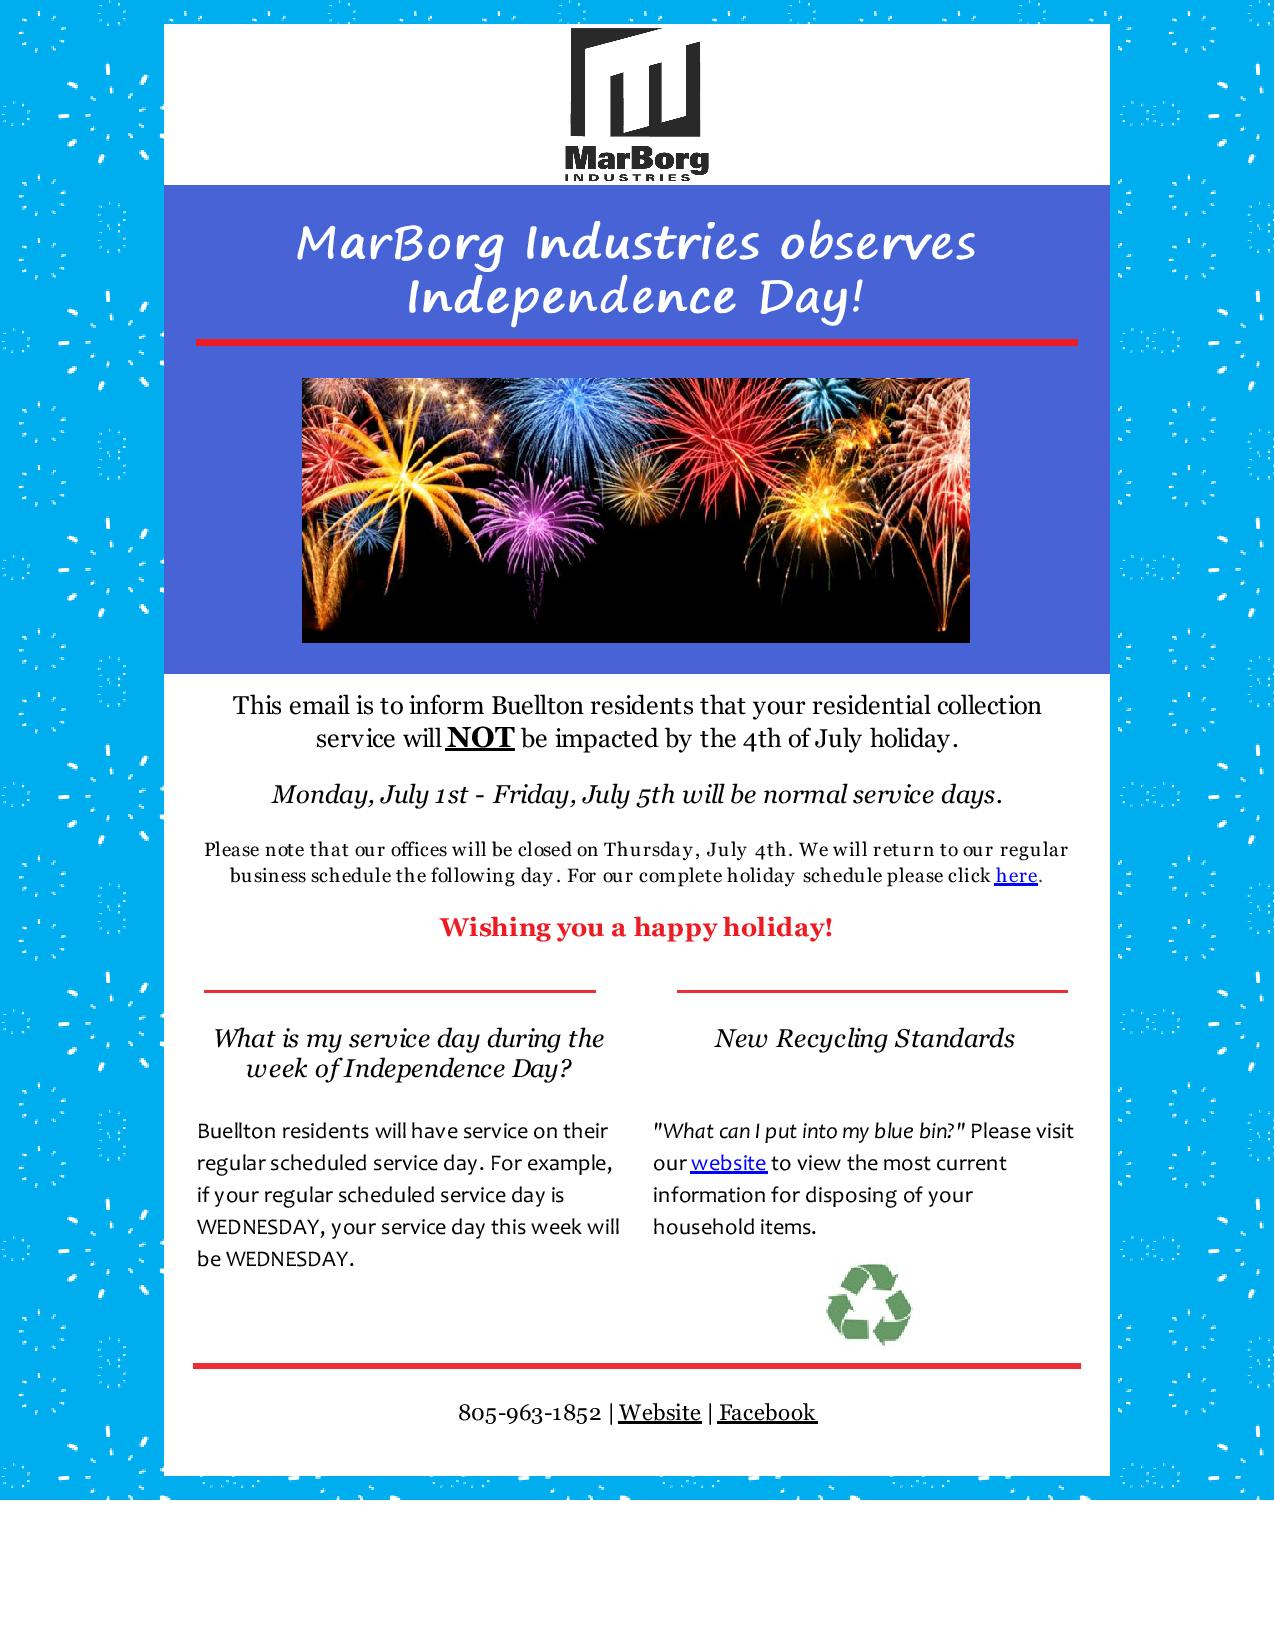 Marborg Industries Observes Independence Day!-2